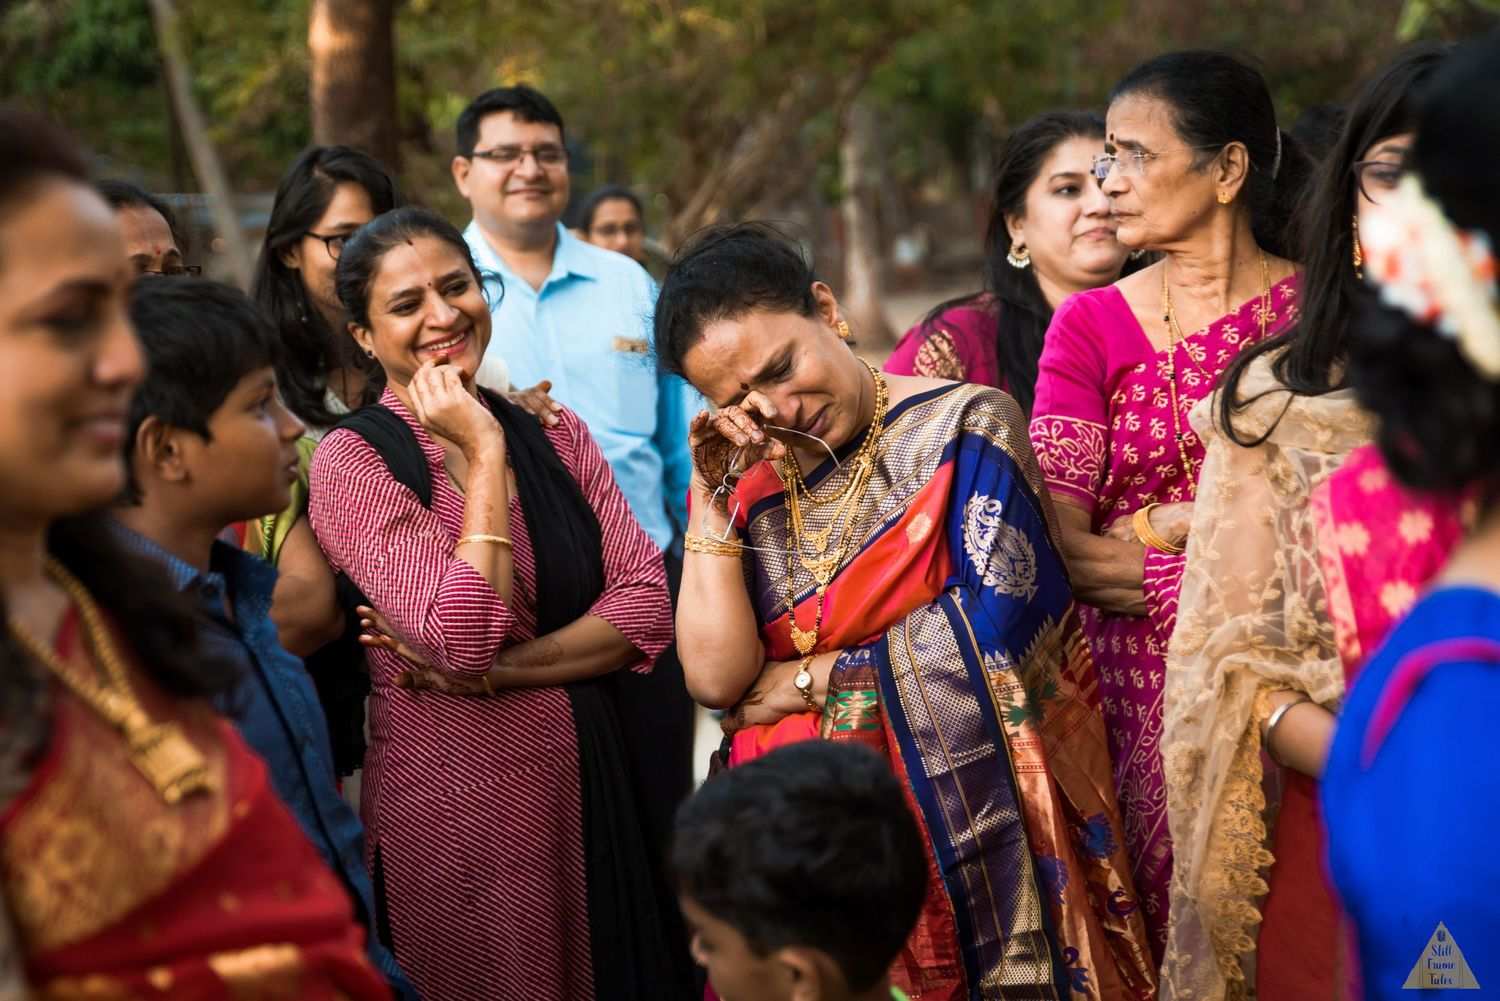 Relatives get emotional while bidding bride good bye at her viddai